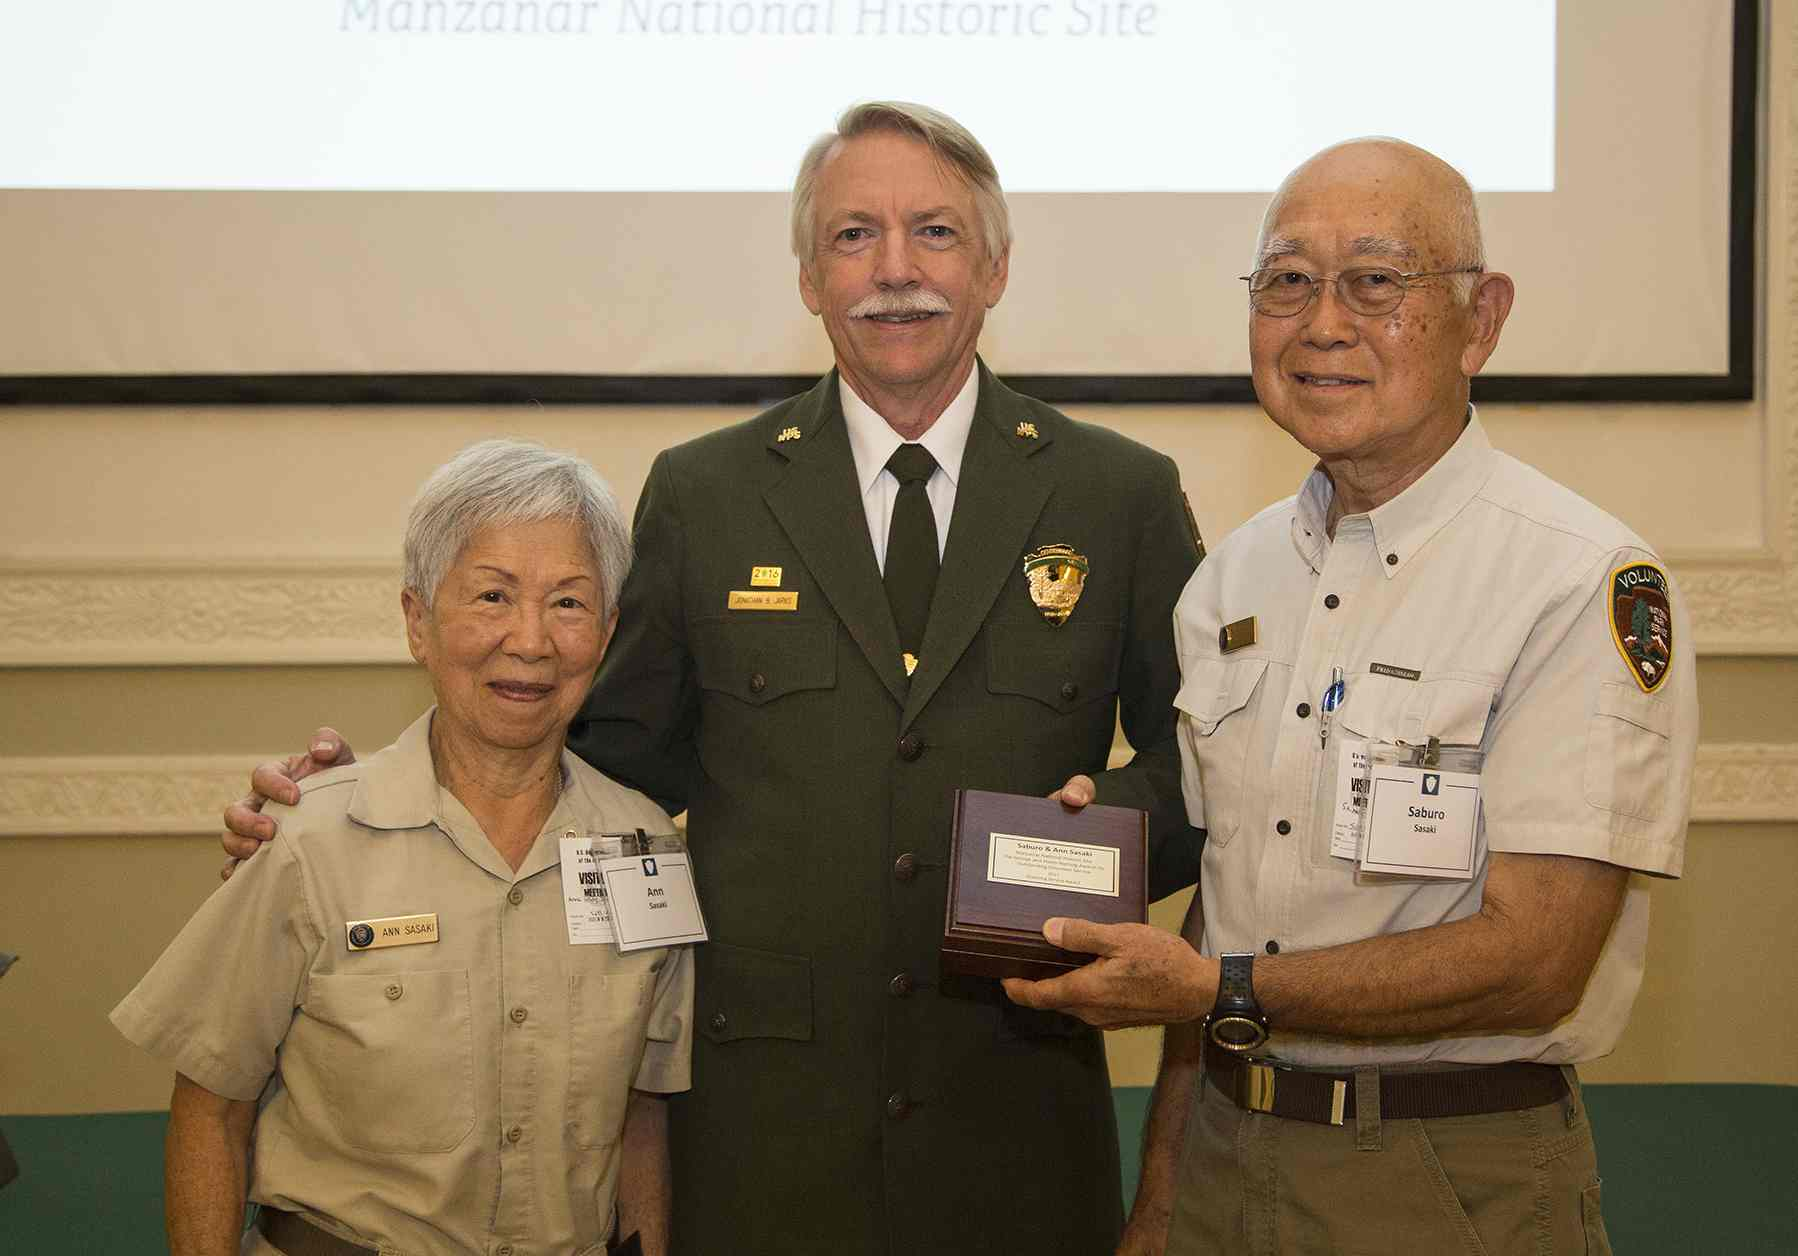 Volunteers Ann and Saburo Sasaki with National Park Service Director Jon Jarvis on Aug. 9 in Washington, D.C. (NPS Photo)